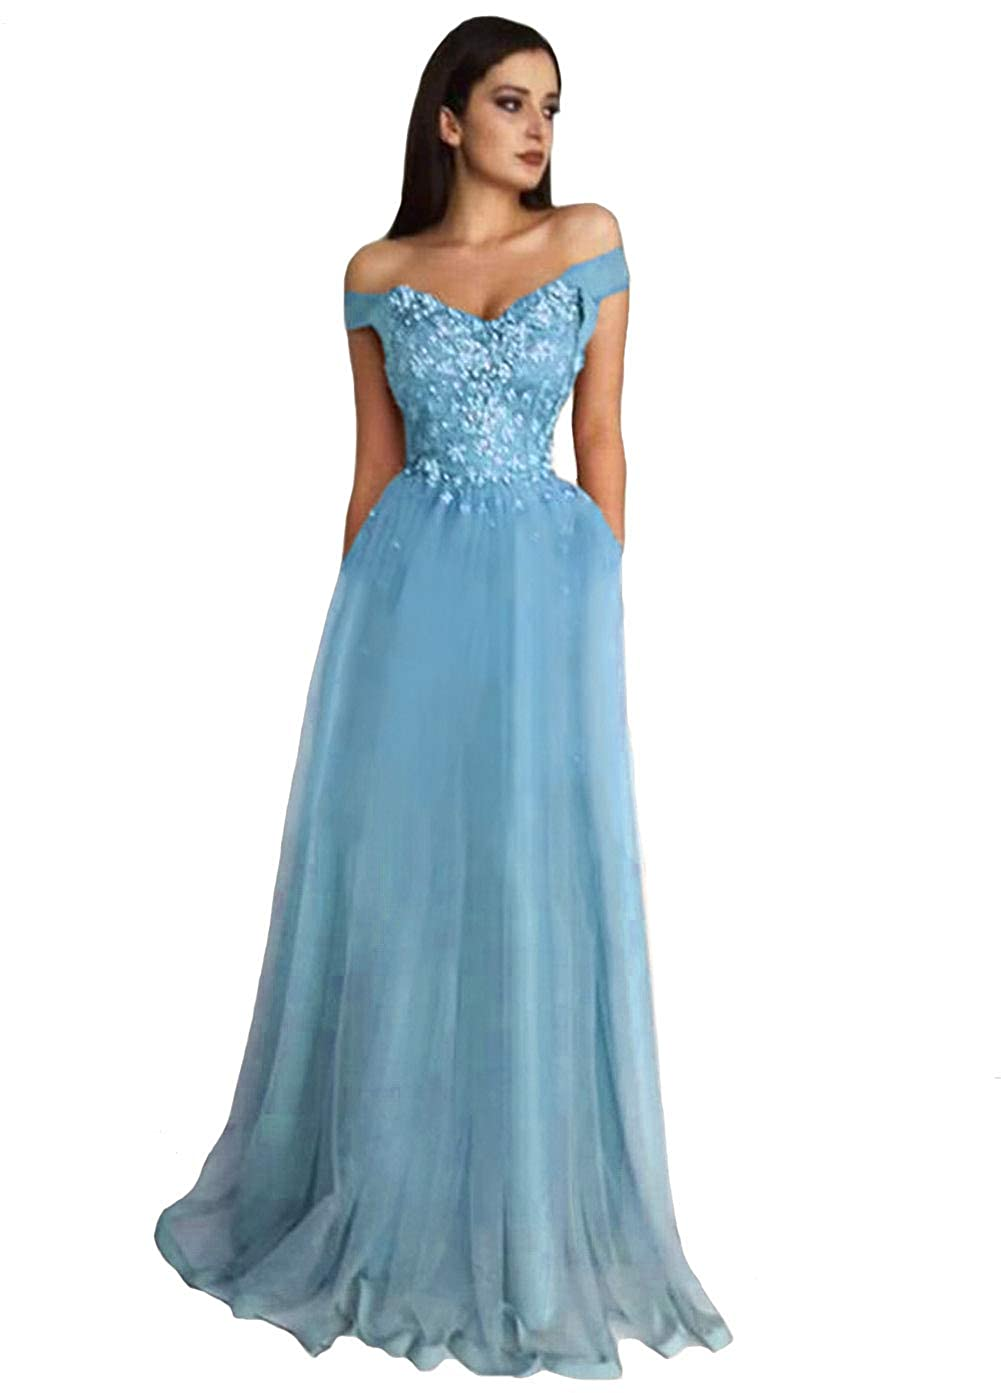 bluee Tsbridal Women Off The Shoulder Bead Tulle Prom Dresses Long Evening Party Gown